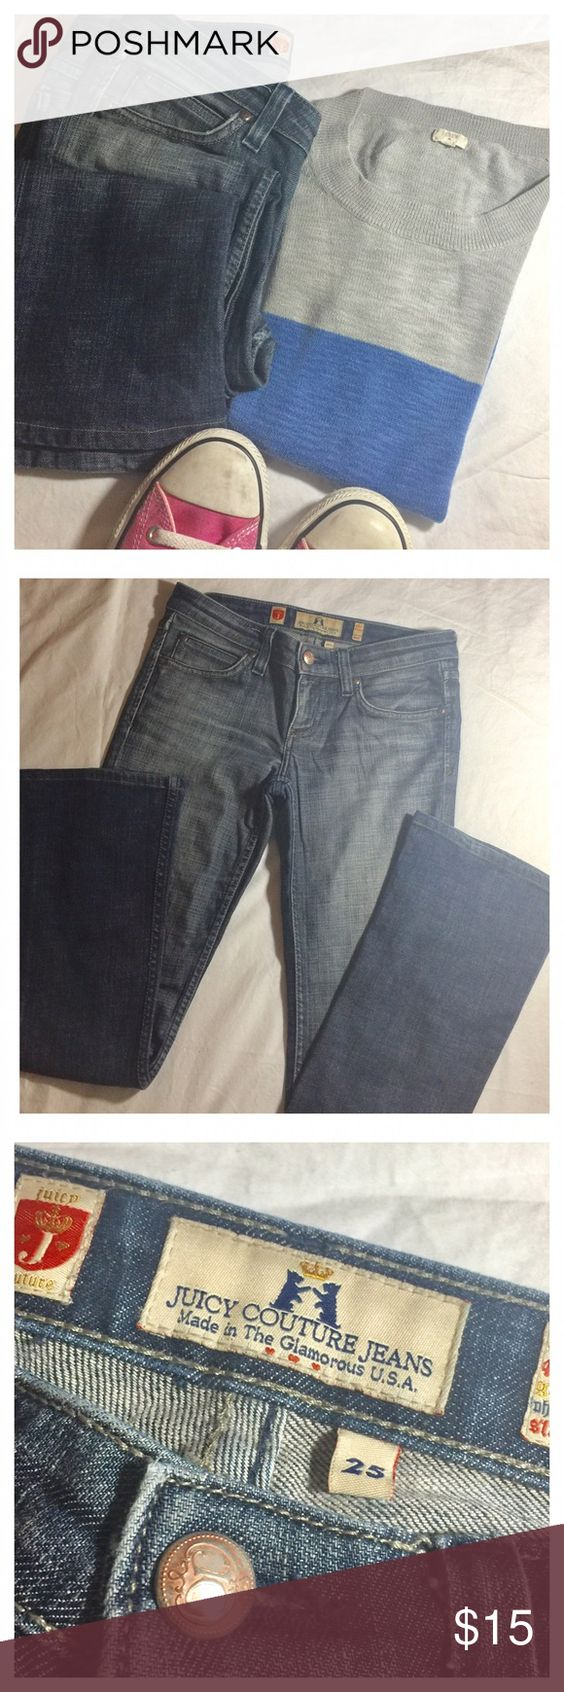 JUICY Courture Jeans ripped good condition JUICY Courture Jeans ripped wide leg good condition Juicy Couture Jeans Flare & Wide Leg